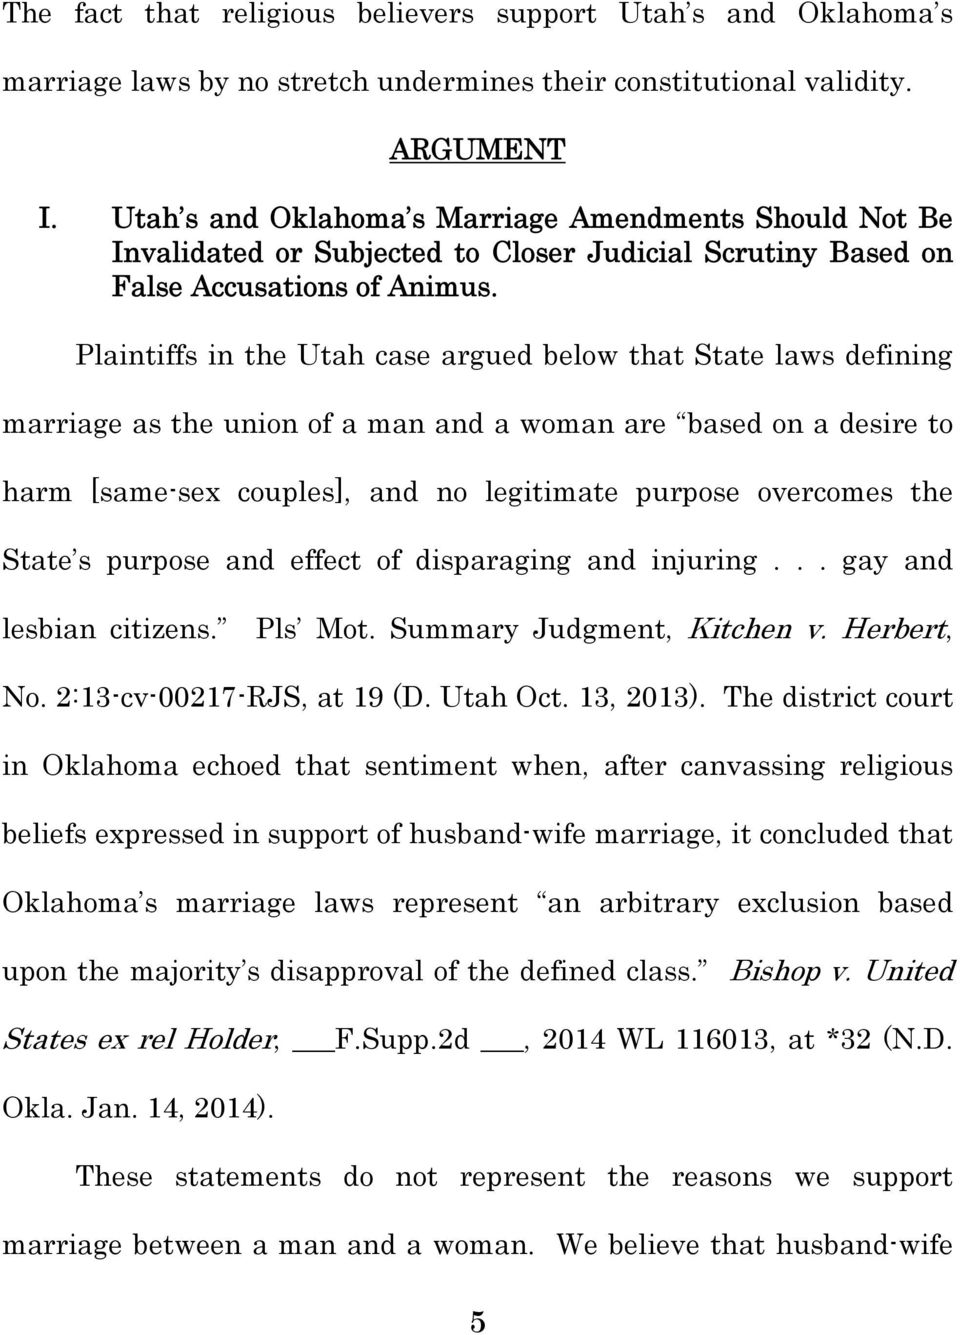 Plaintiffs in the Utah case argued below that State laws defining marriage as the union of a man and a woman are based on a desire to harm [same-sex couples], and no legitimate purpose overcomes the